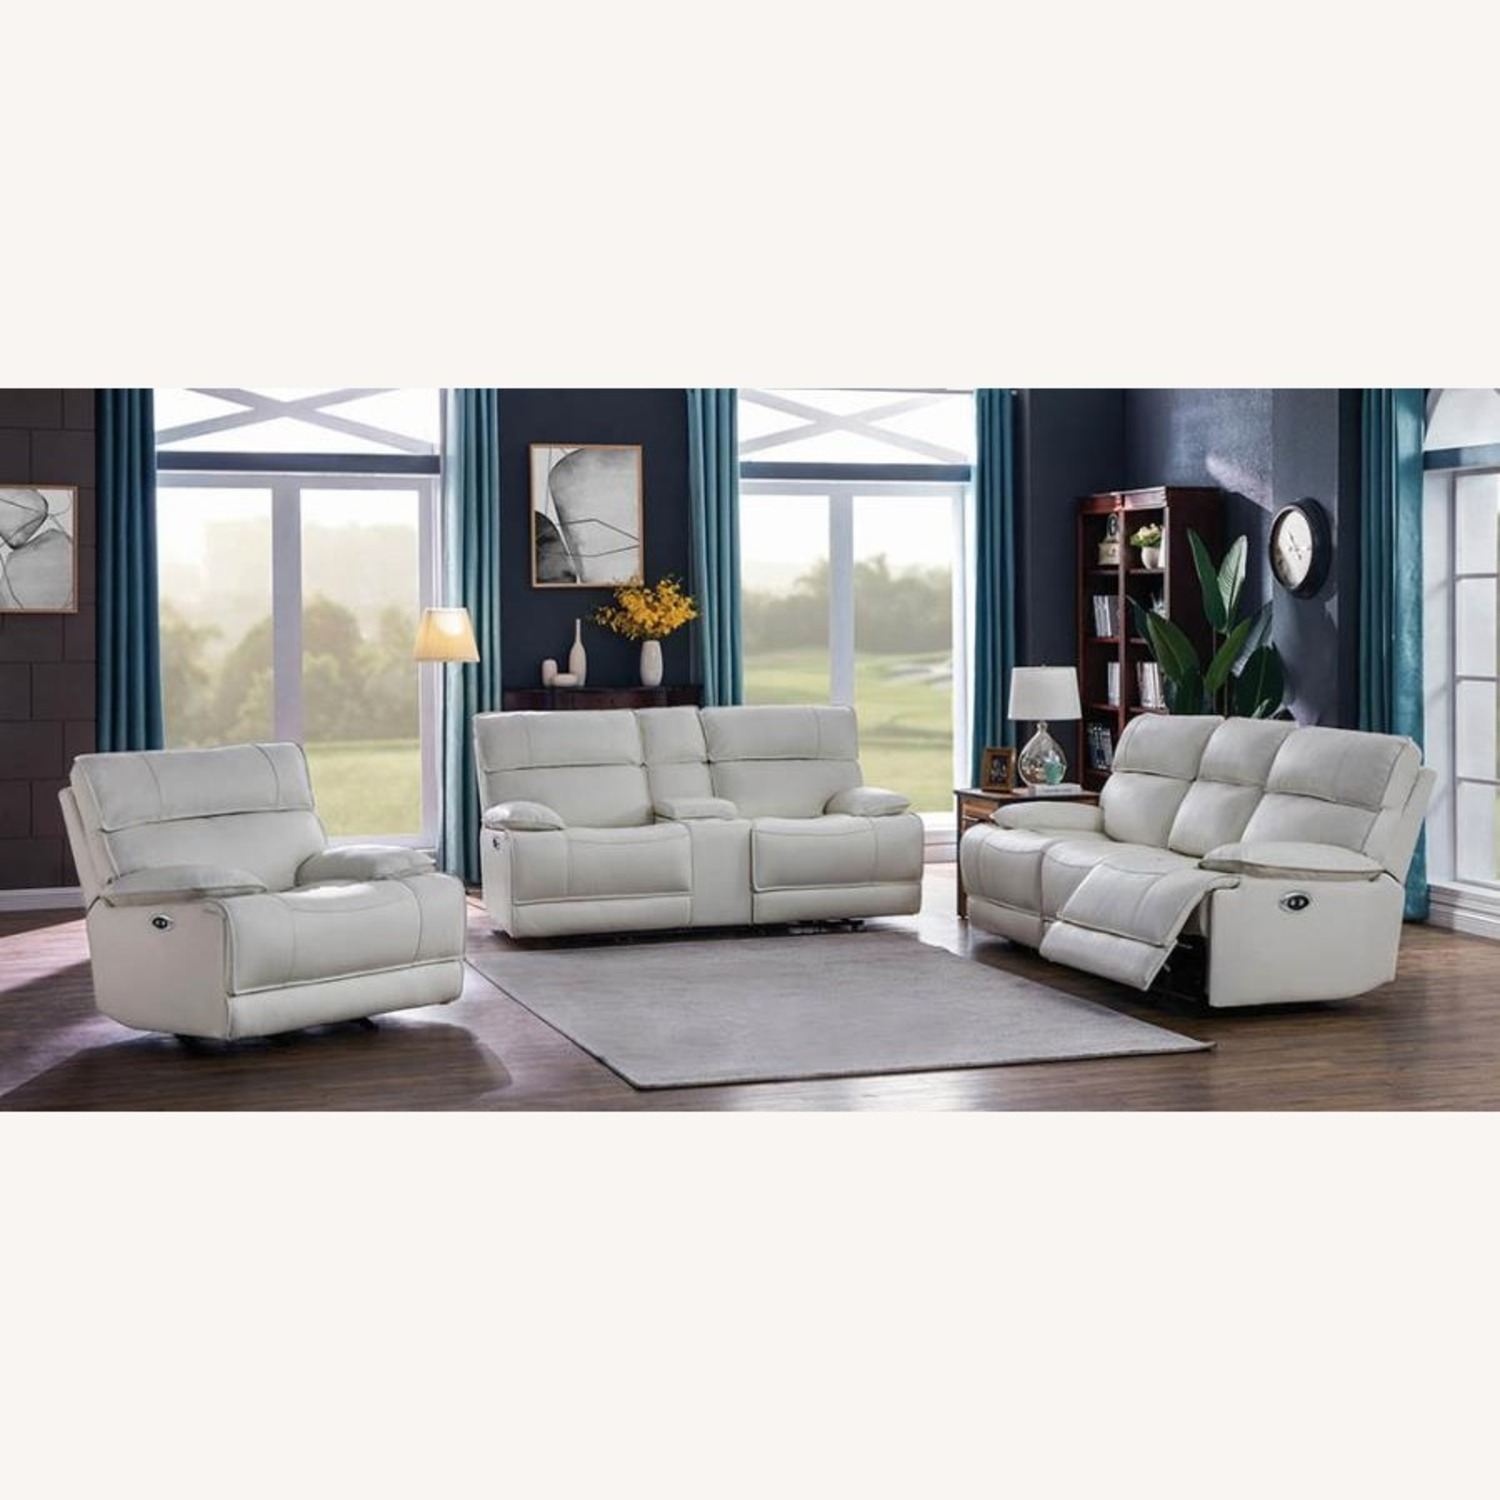 Power Glider Recliner Upholstered In White Leather - image-8